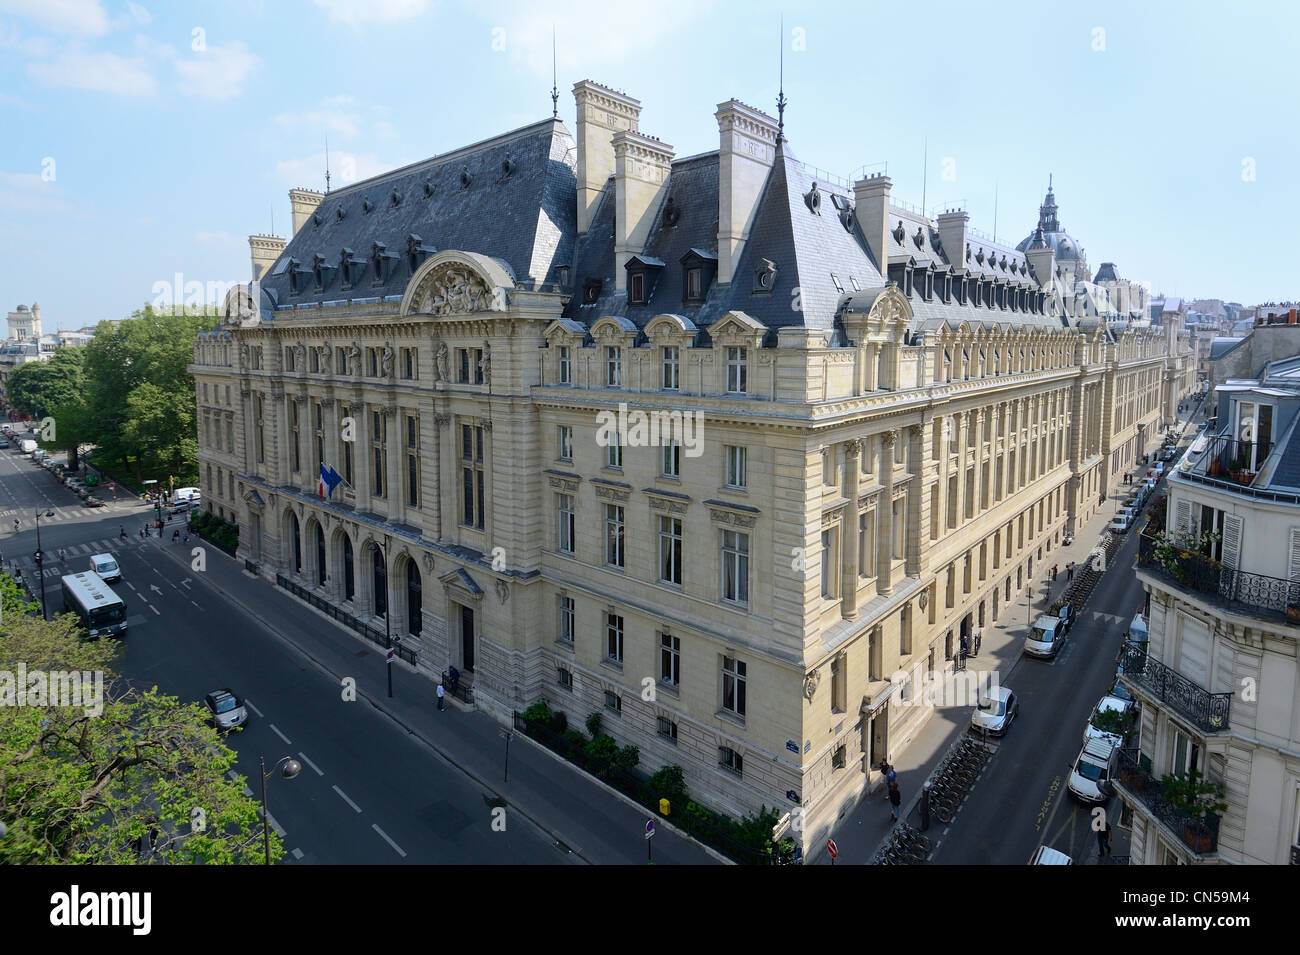 France, Paris, the Sorbonne university in the Latin district - Stock Image